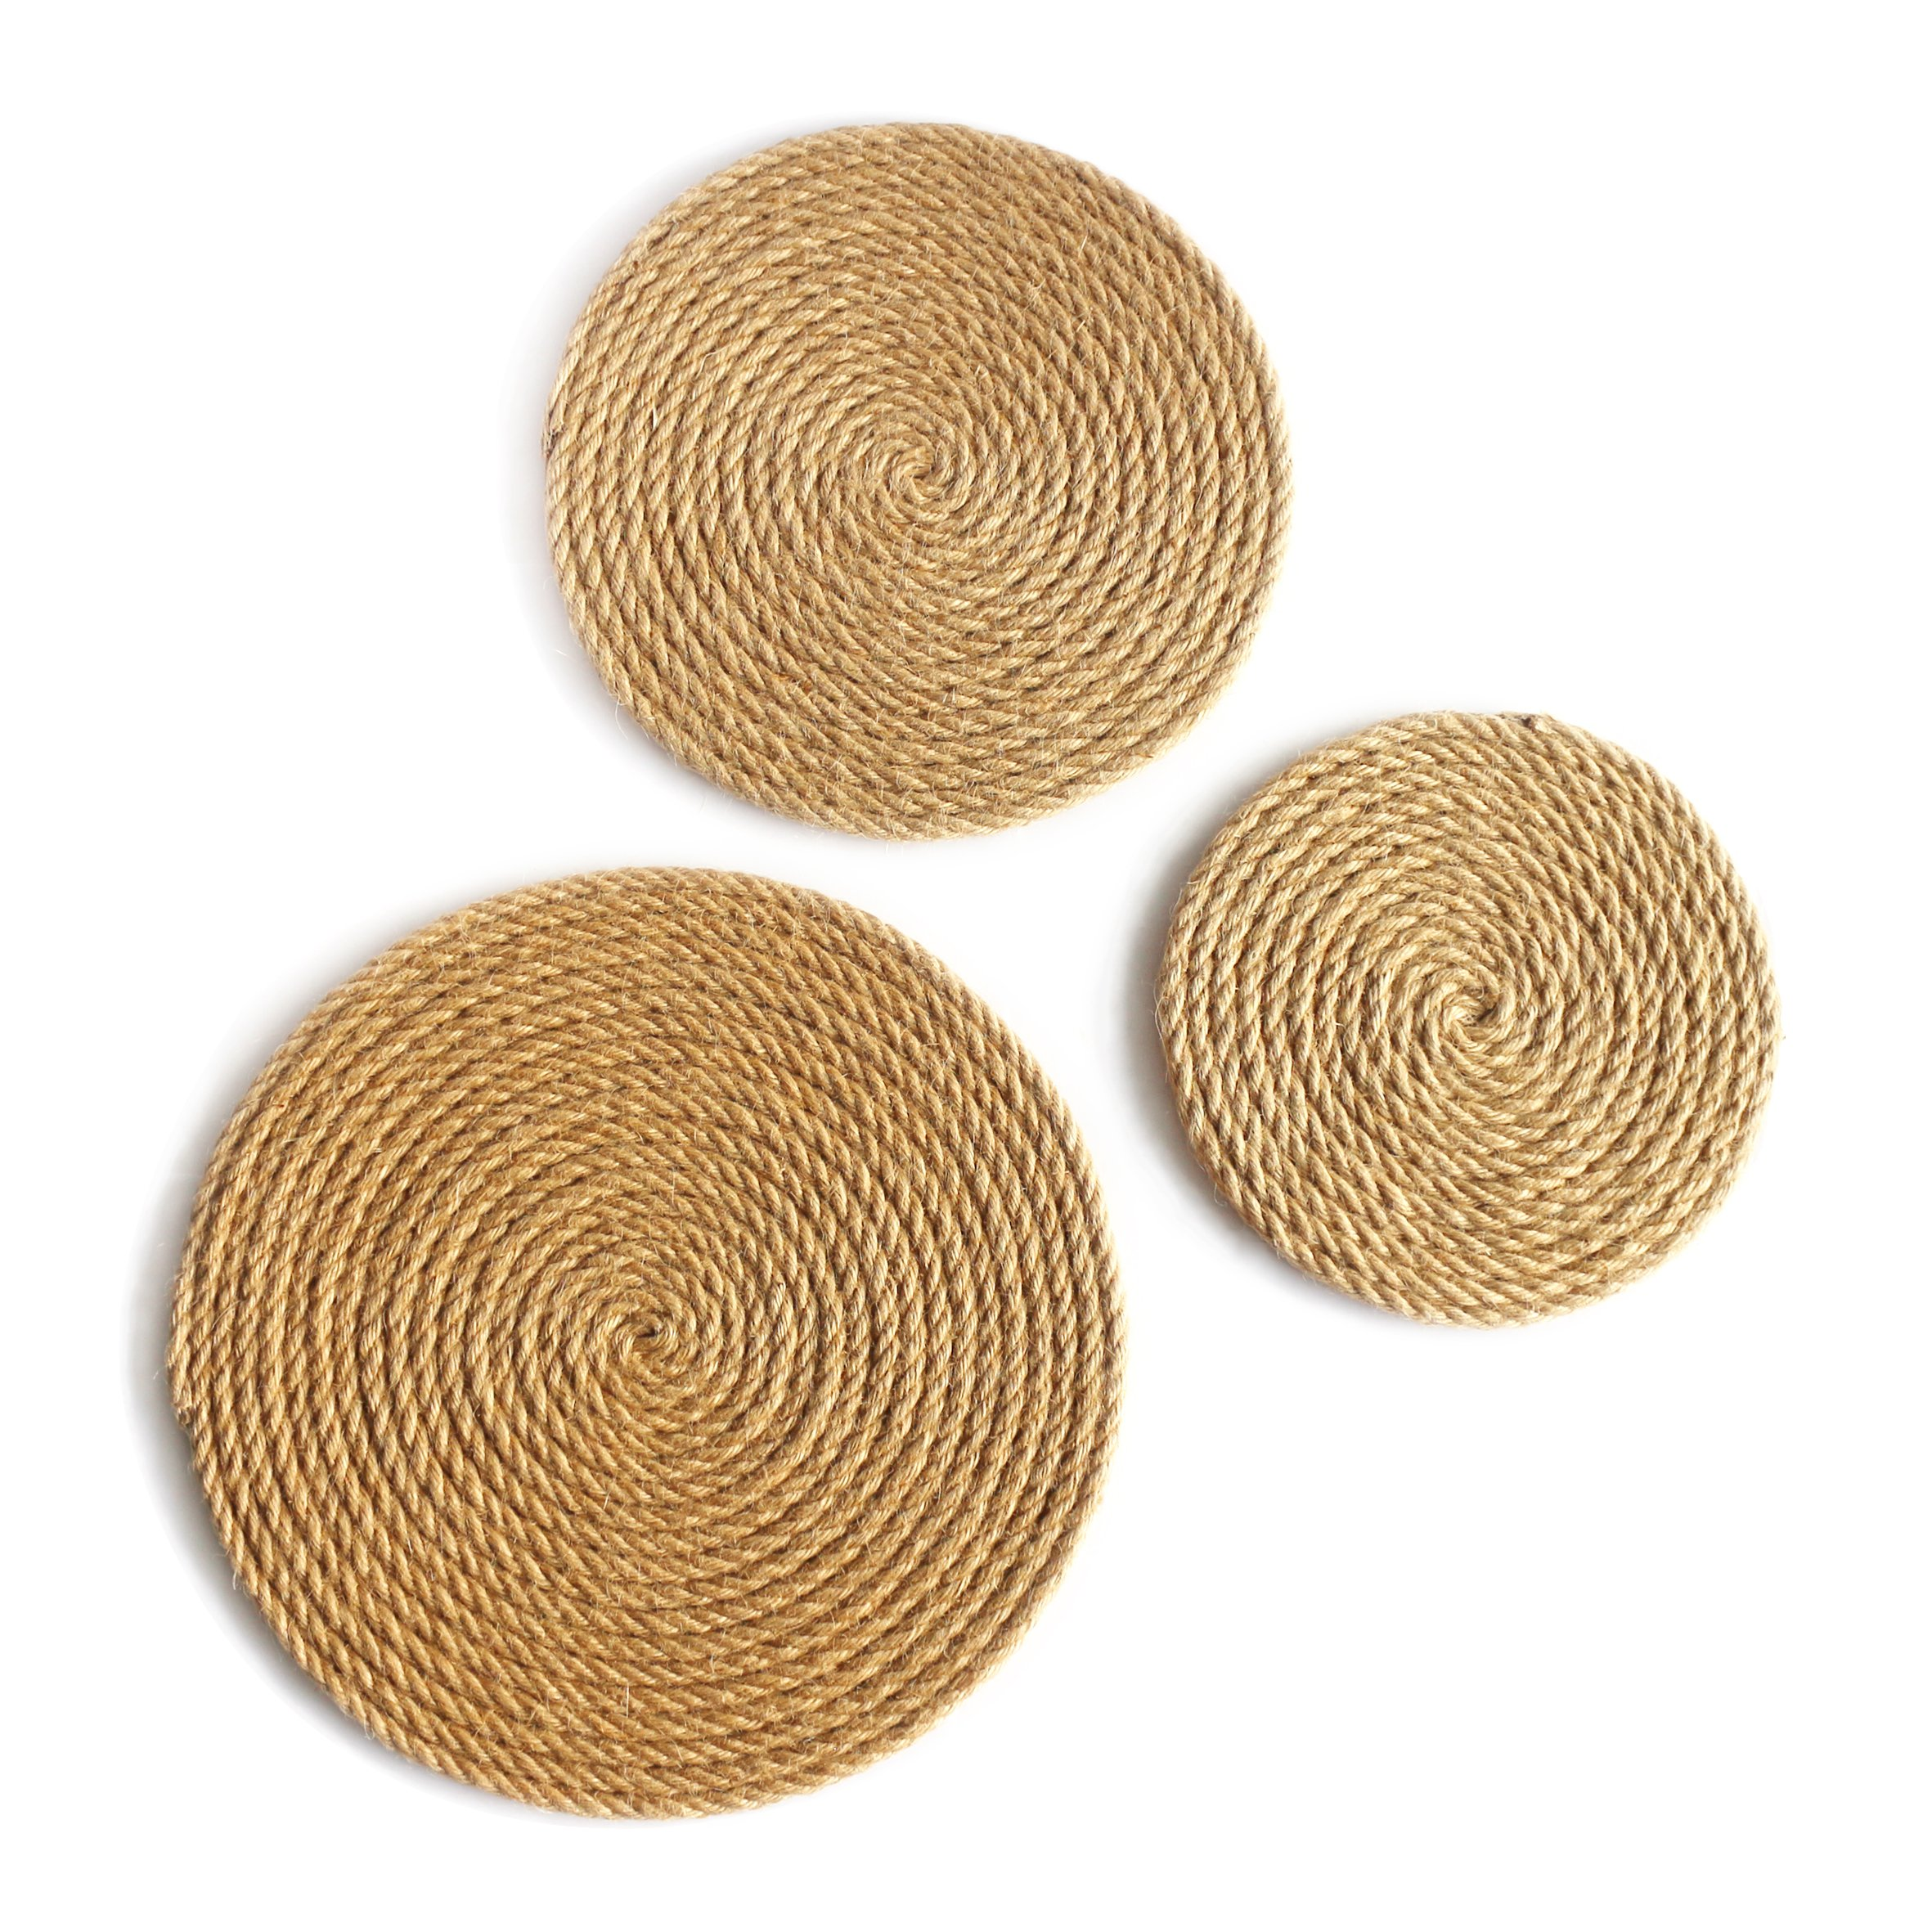 CVHOMEDECO. Rustic Hemp Rope Round Disc for Wall Hanging, Indoor DIY Wall Art Sculptures for Home, Office and Hotel Primitive Country Style Décor. Set of 3, 12/10/8 Inch by CVHOMEDECO.